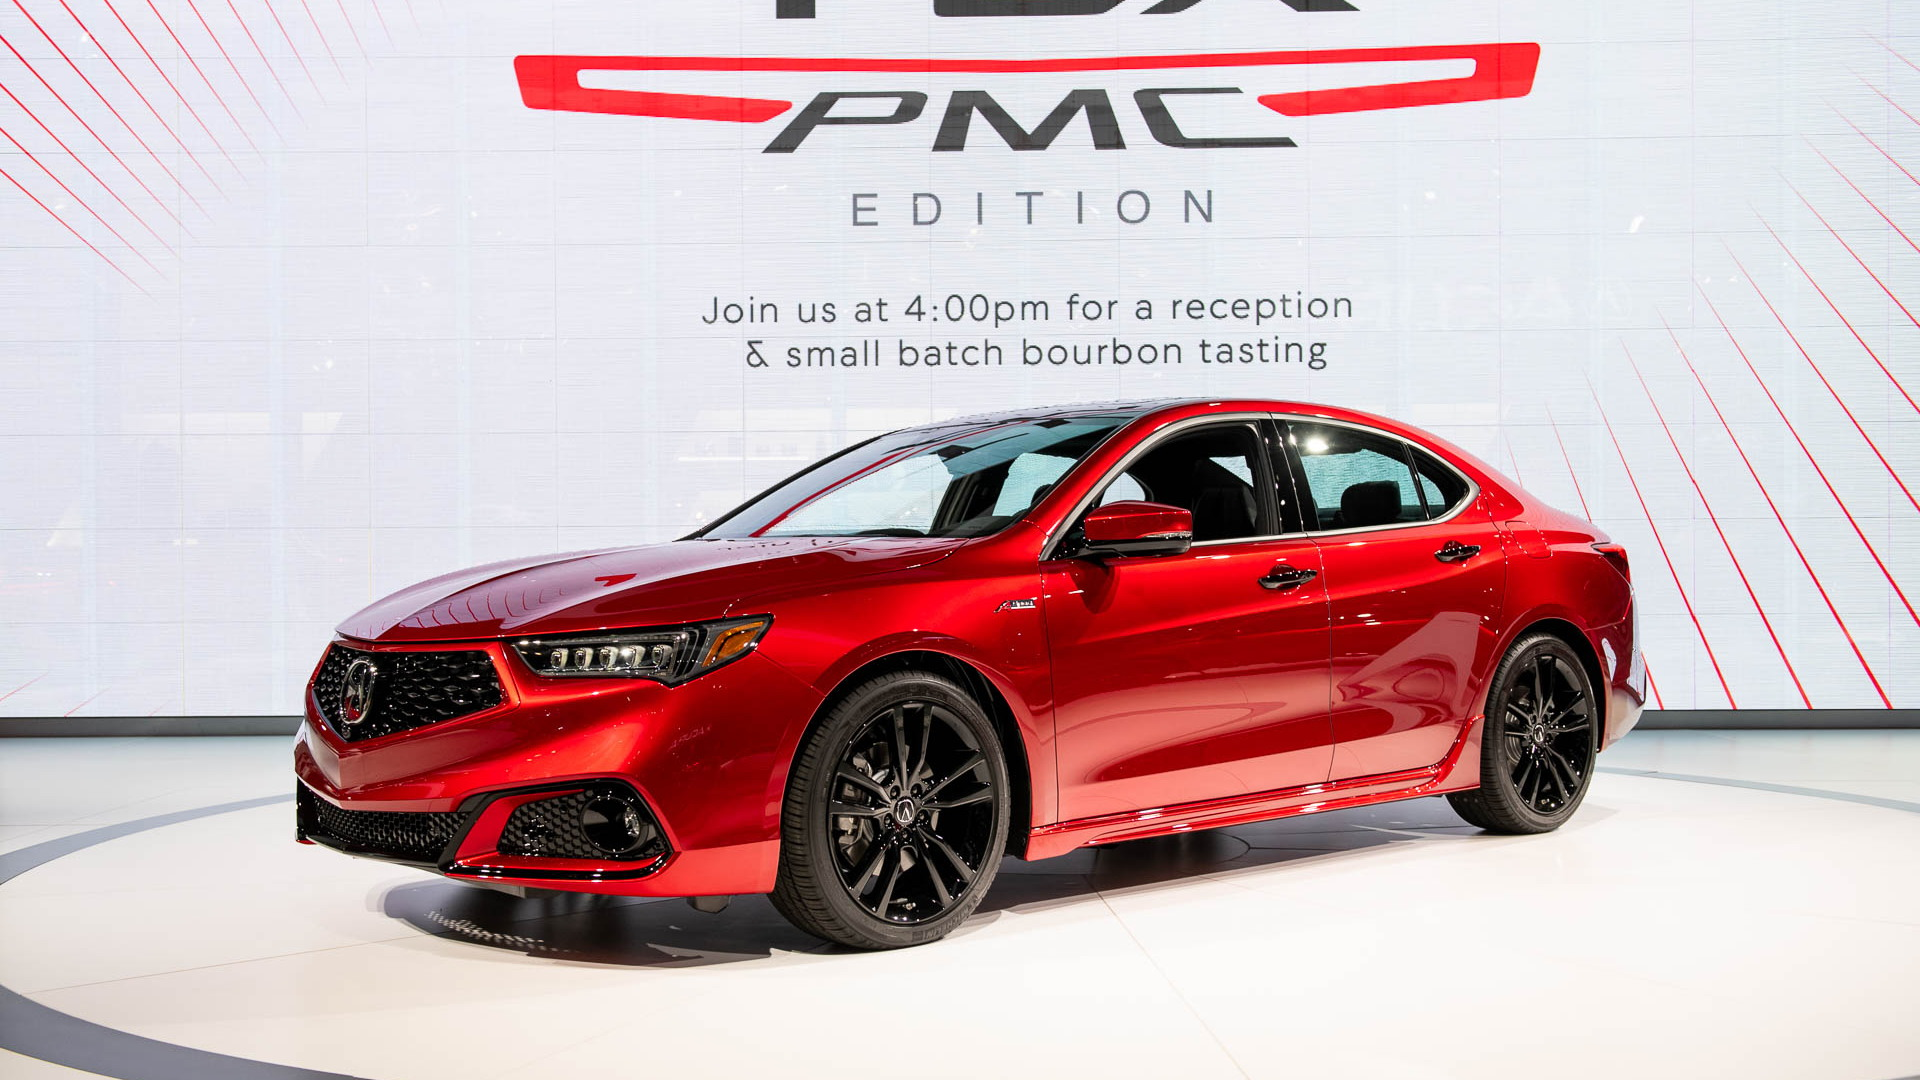 2020 Acura TLX PMC edition, 2019 New York International Auto Show